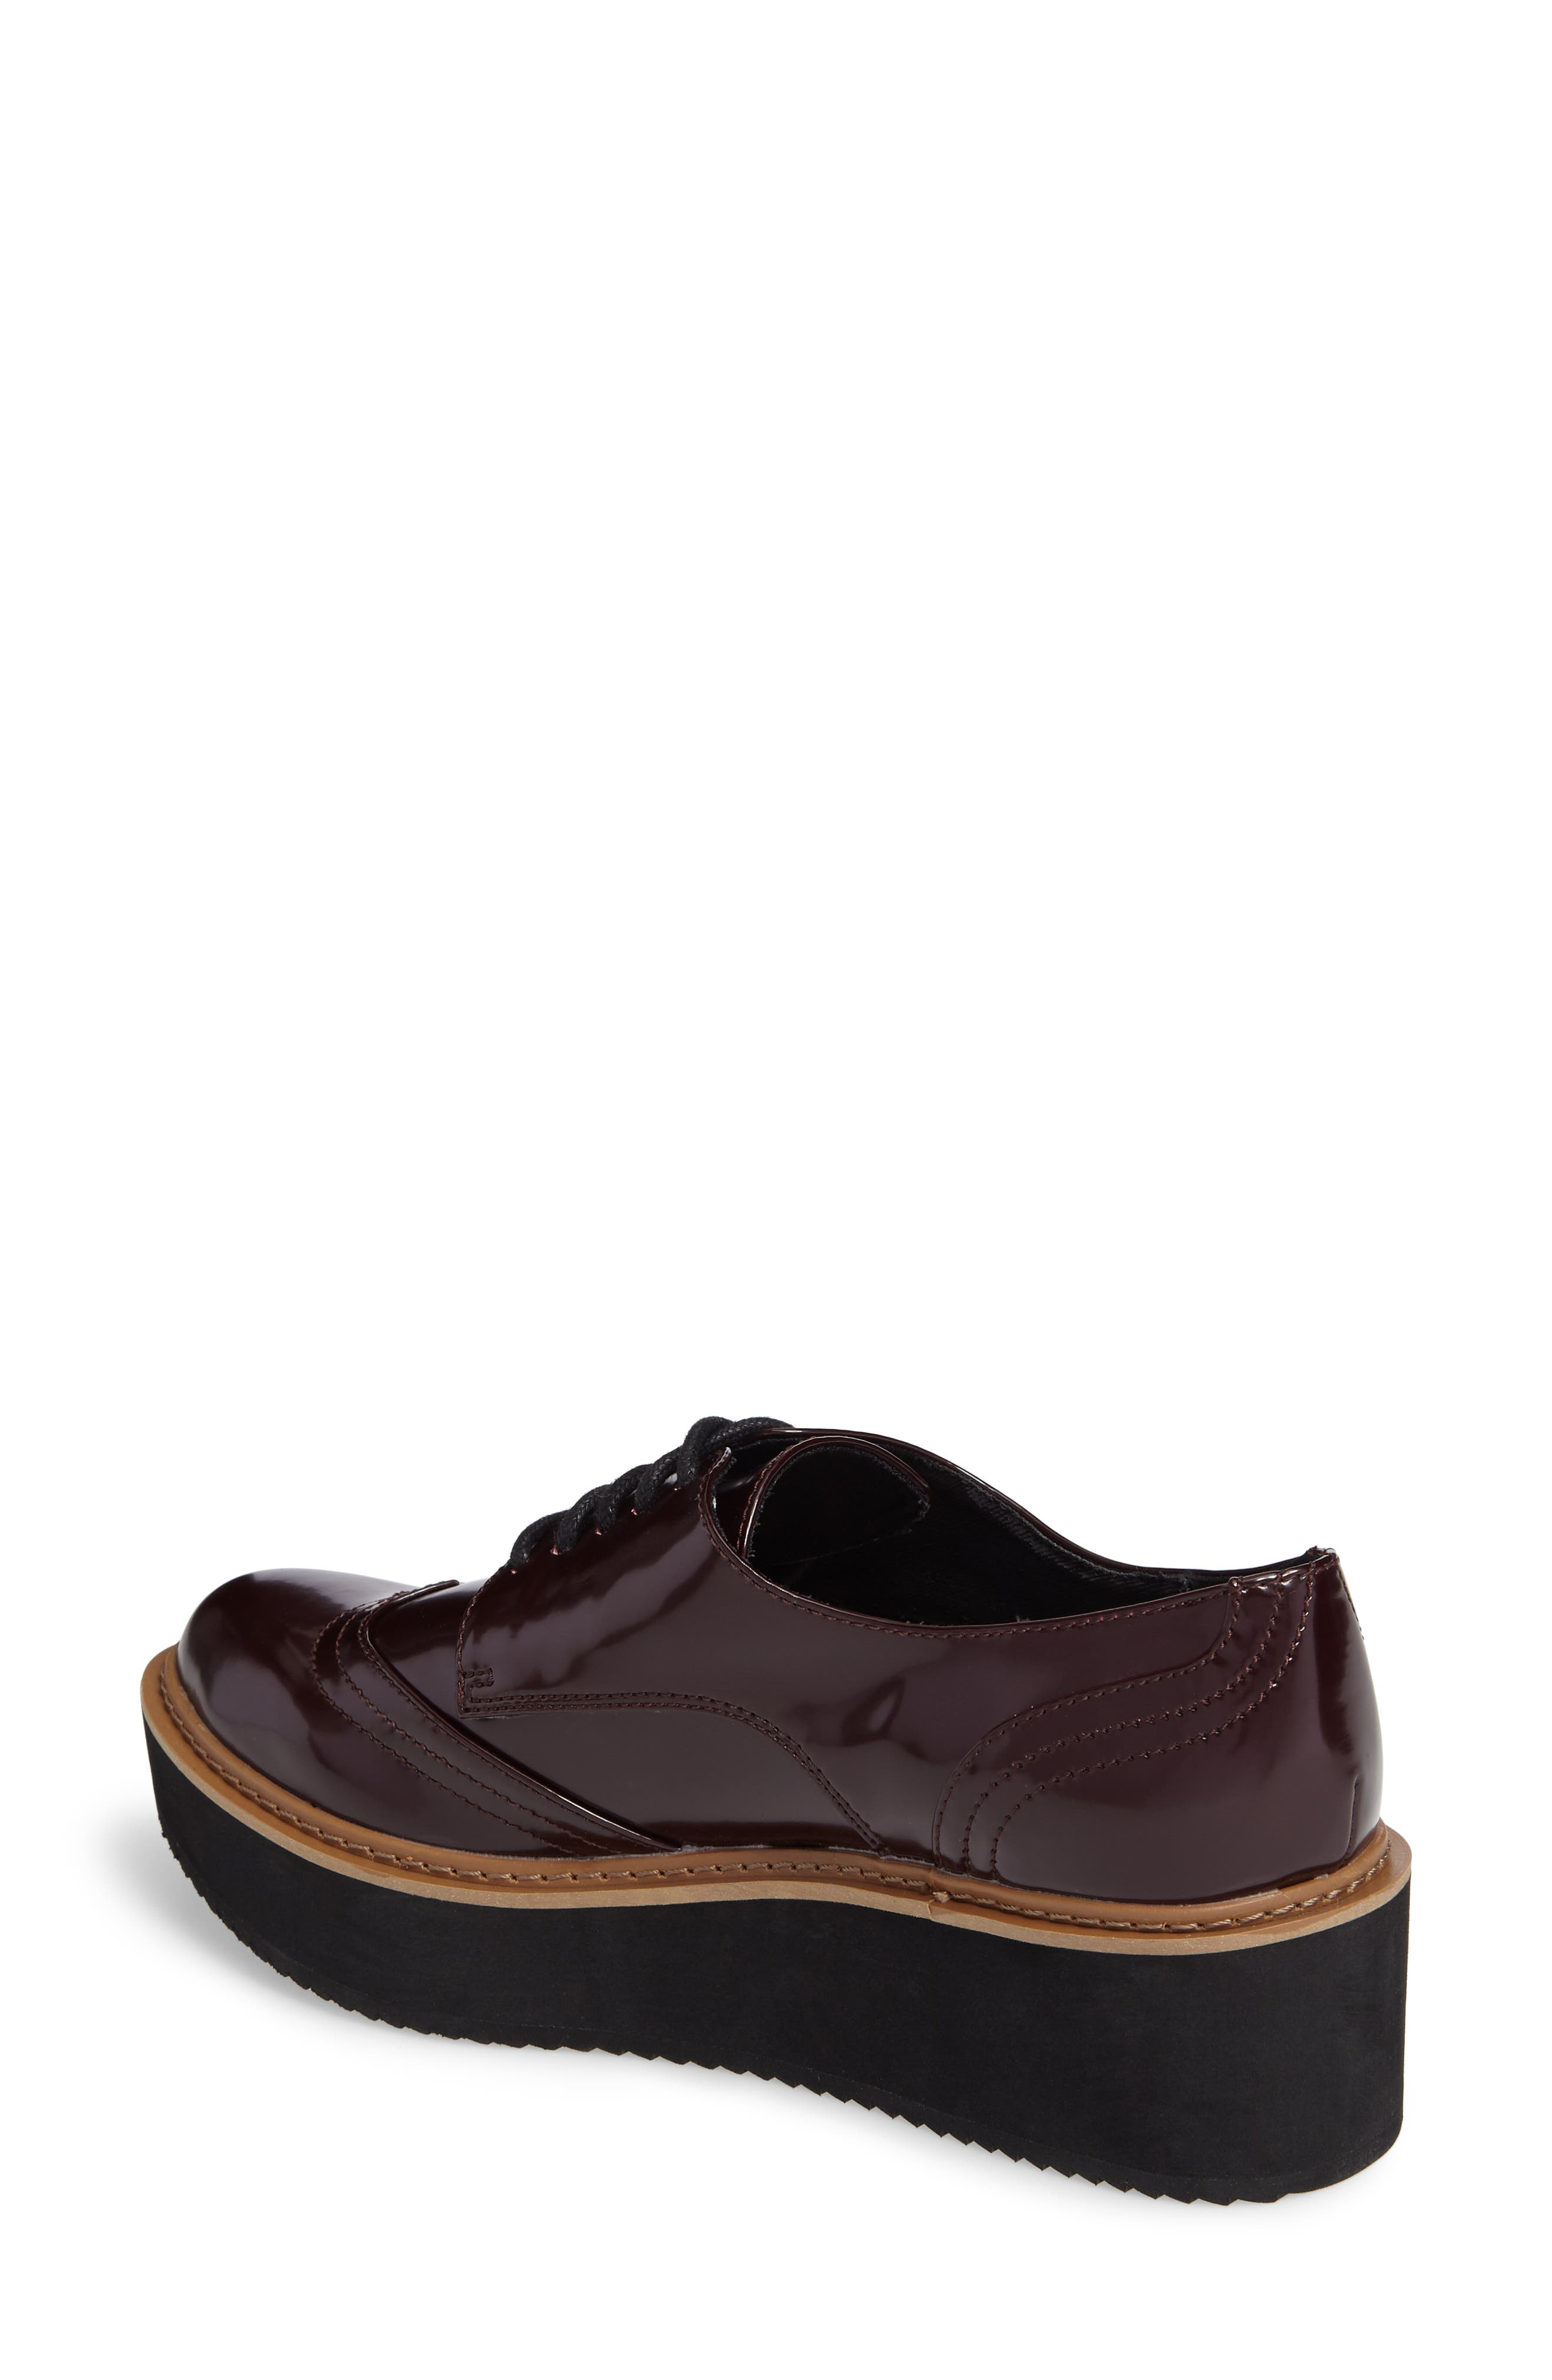 Lydia Oxford,                             Alternate thumbnail 2, color,                             Burgundy Patent